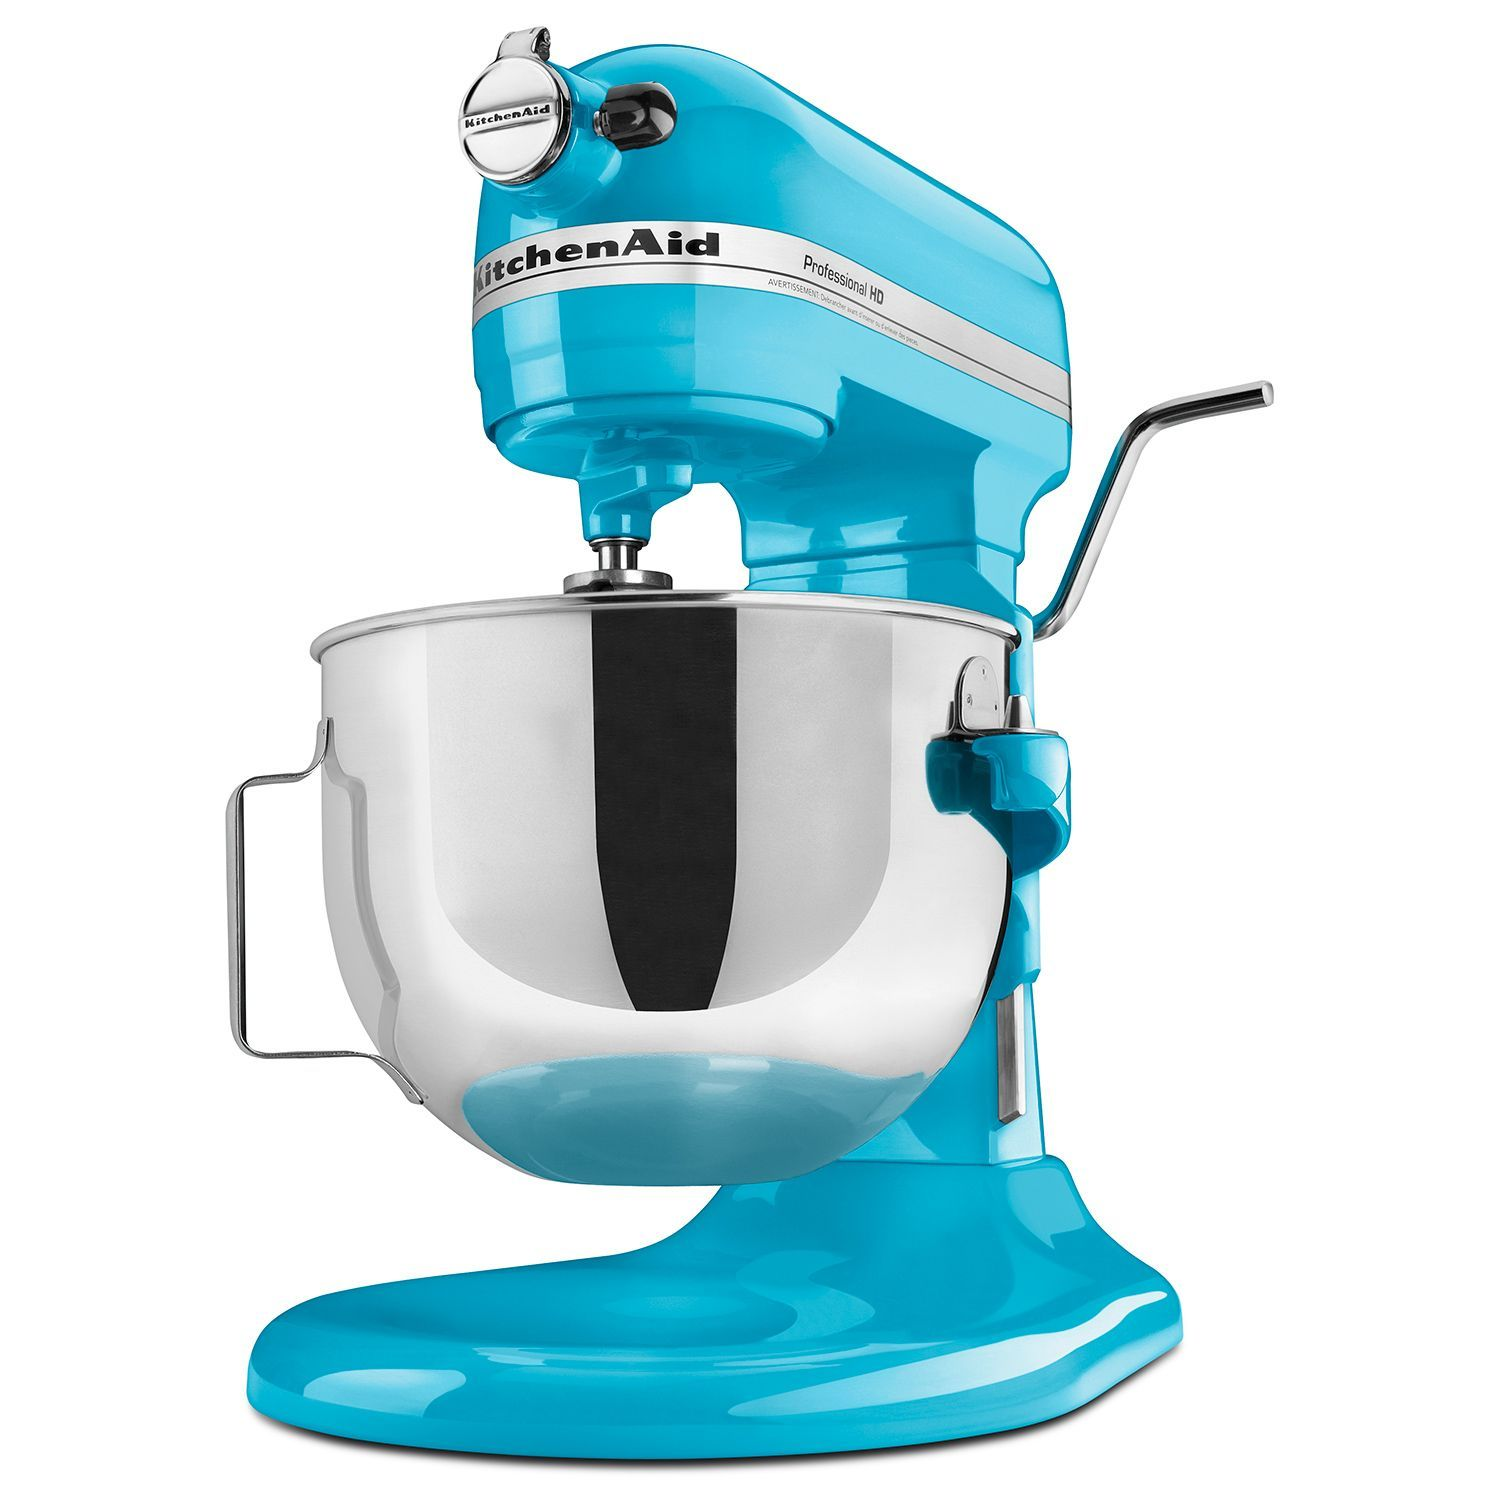 KitchenAid Professional HD Stand Mixer - Various Colors - Sam\'s Club ...